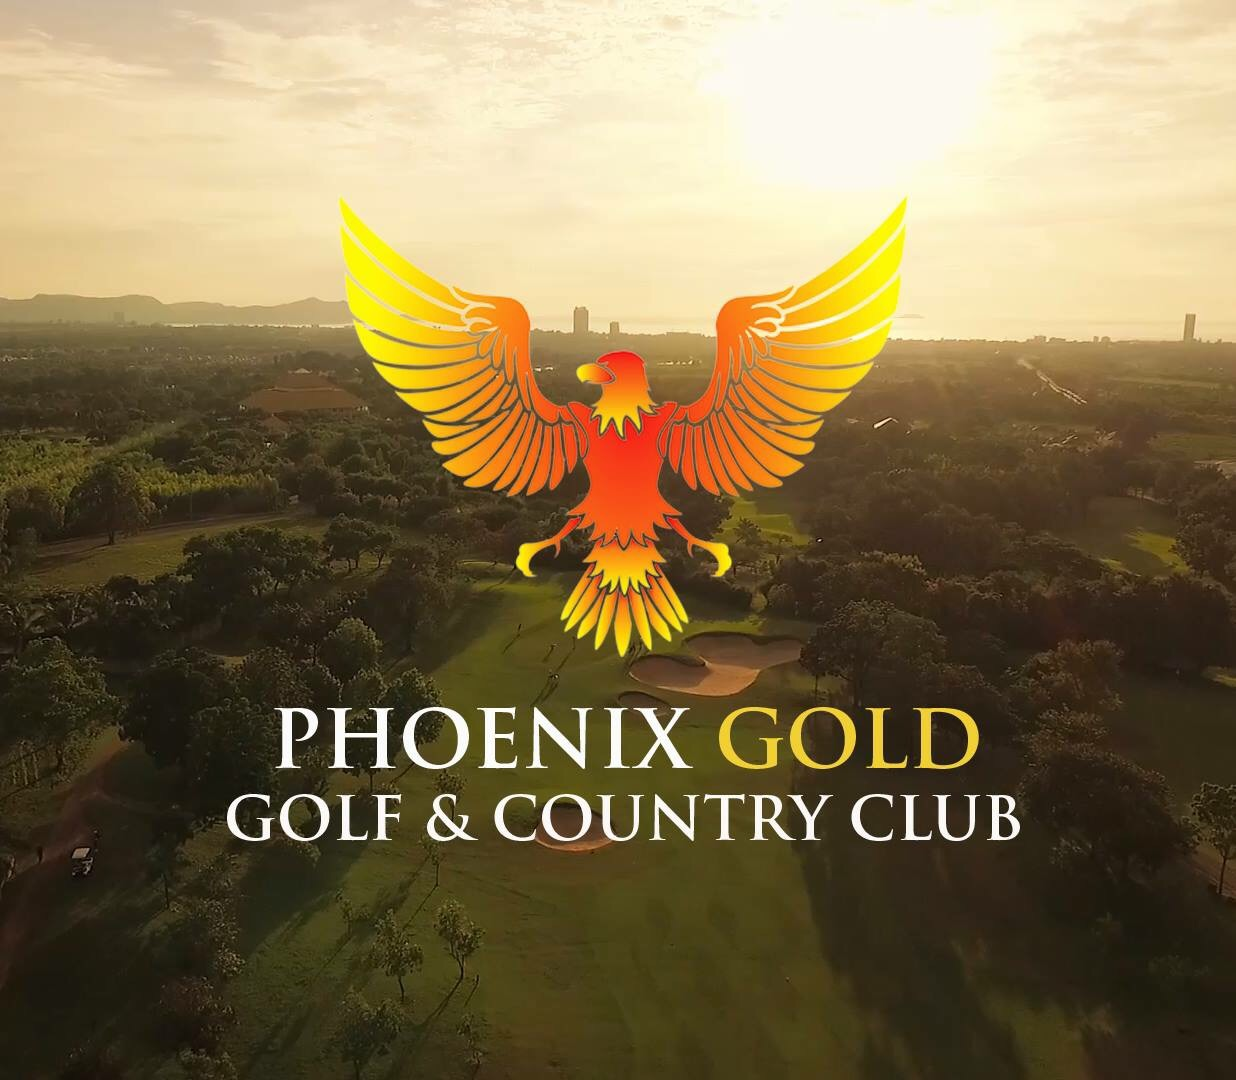 phoenix gold golf amp country club � the stage of